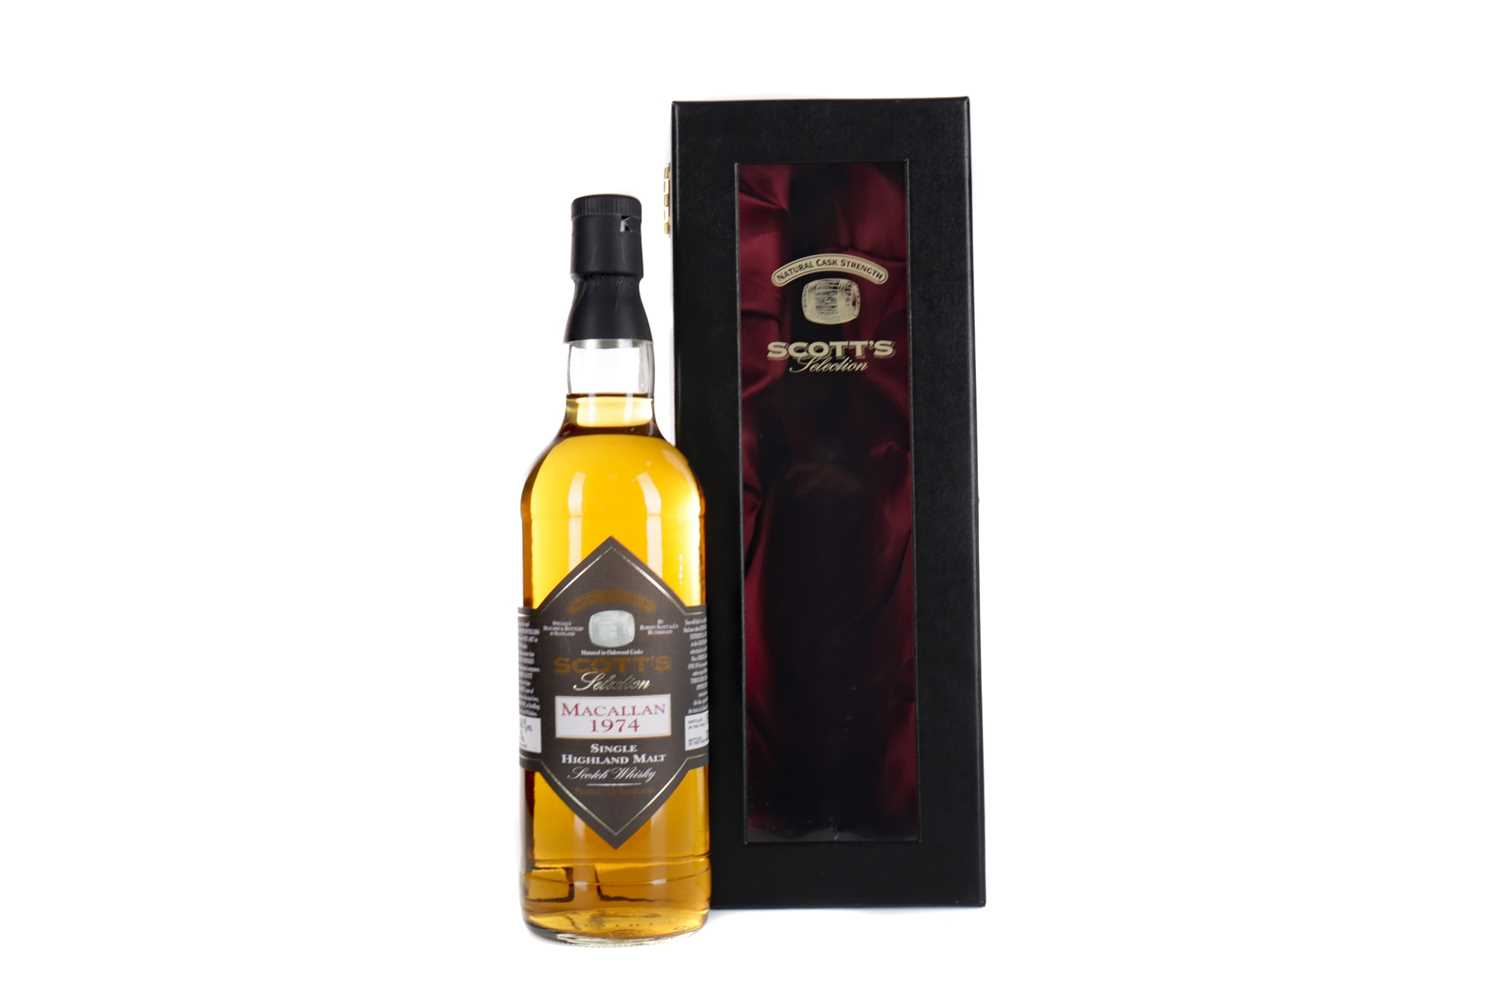 Lot 166 - MACALLAN 1974 SCOTT'S SELECTION